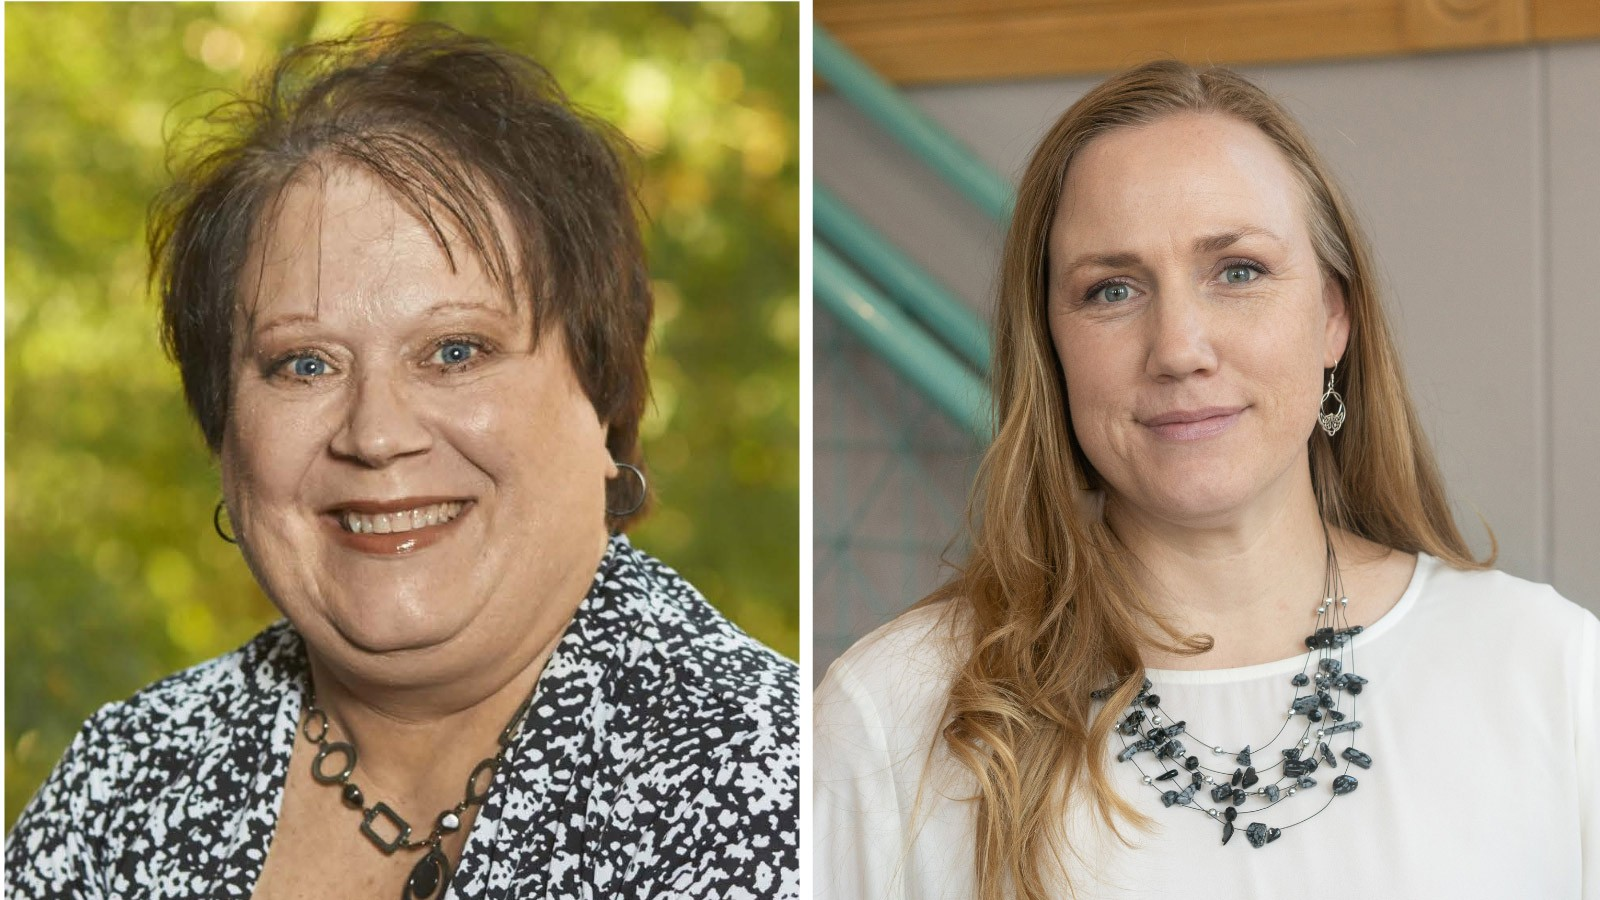 USU Names Advisors of the Year for 2021